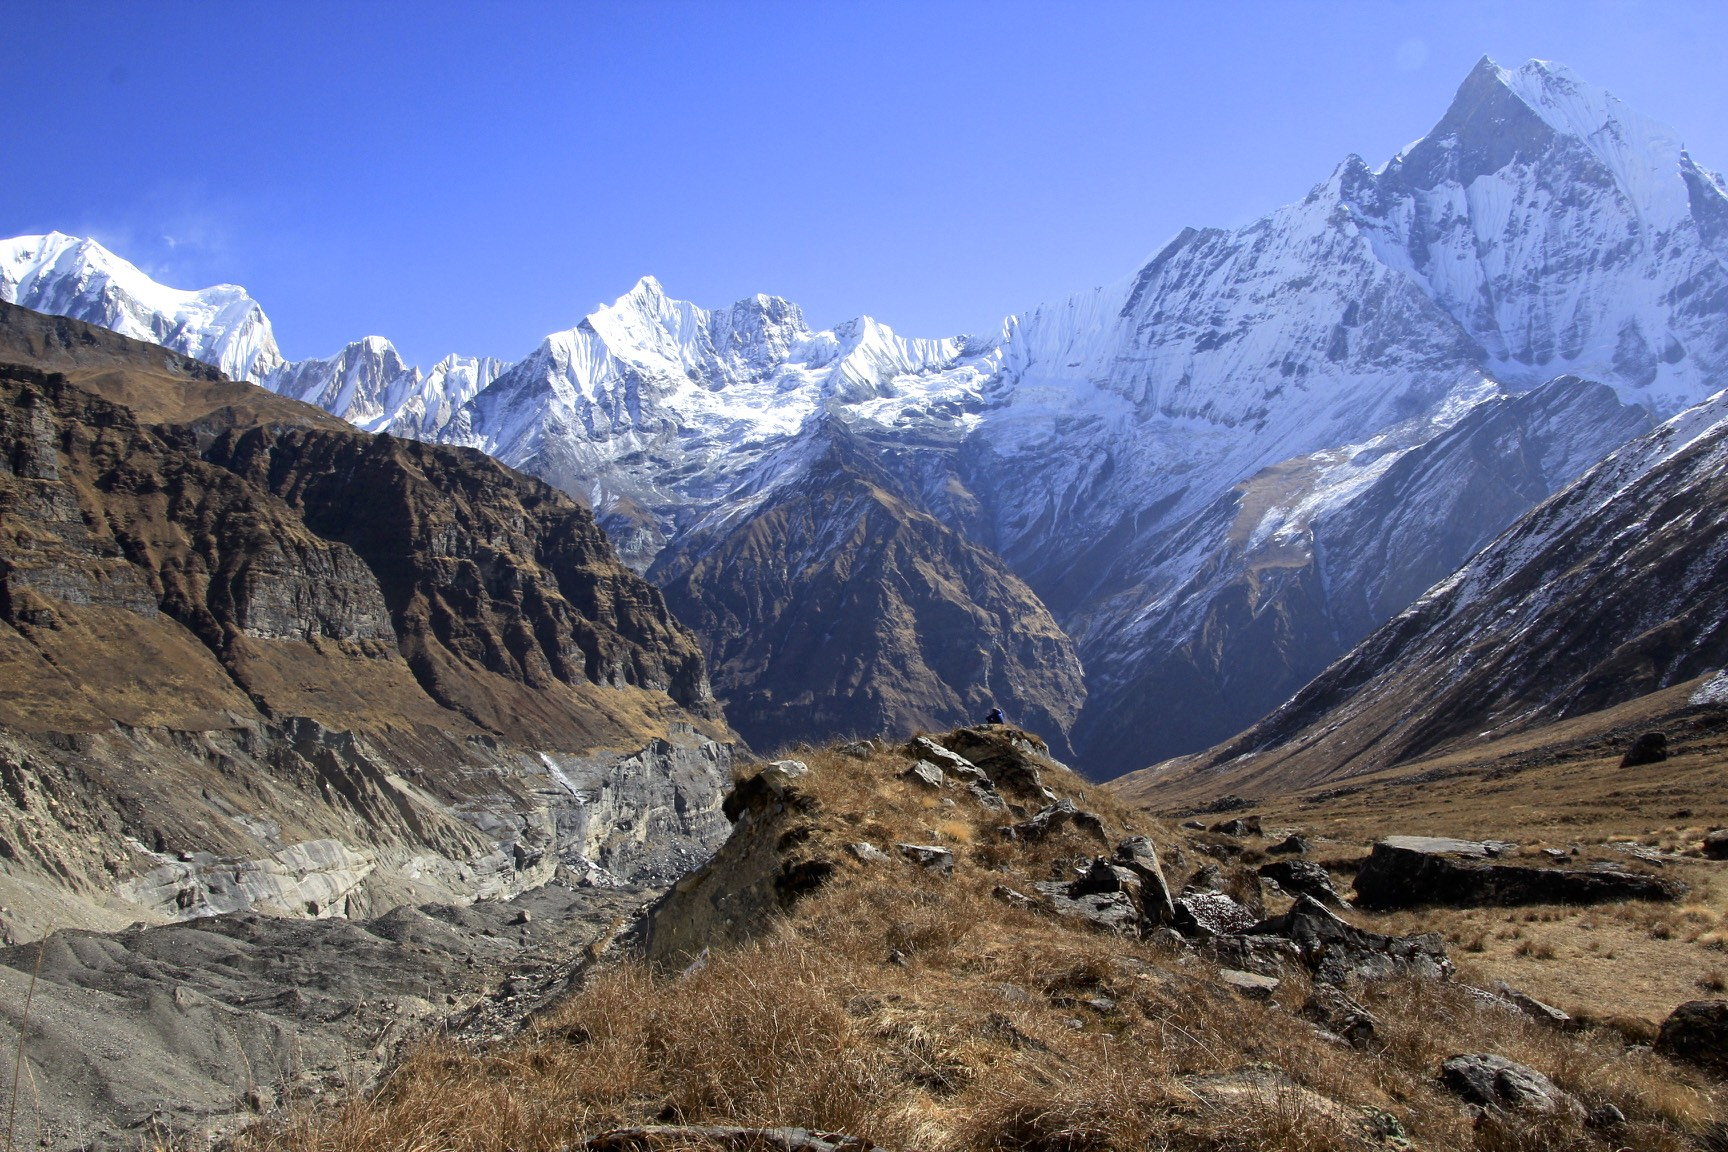 Looking down the Annapurna Glacier. The pointy peak on the right is Machapuchare.